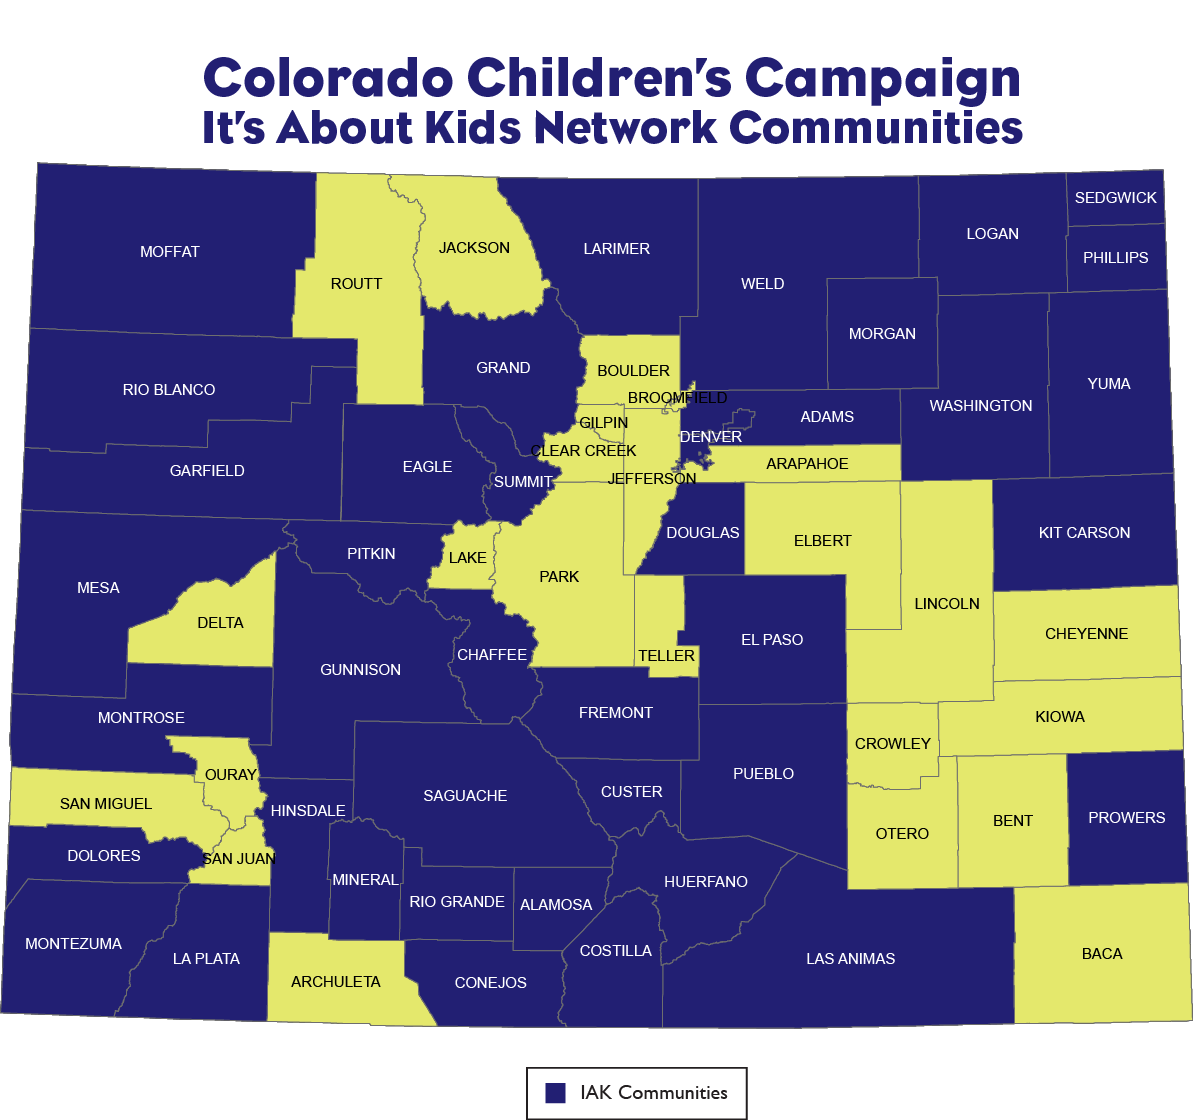 Its About Kids Network Continues To Grow  Colorado